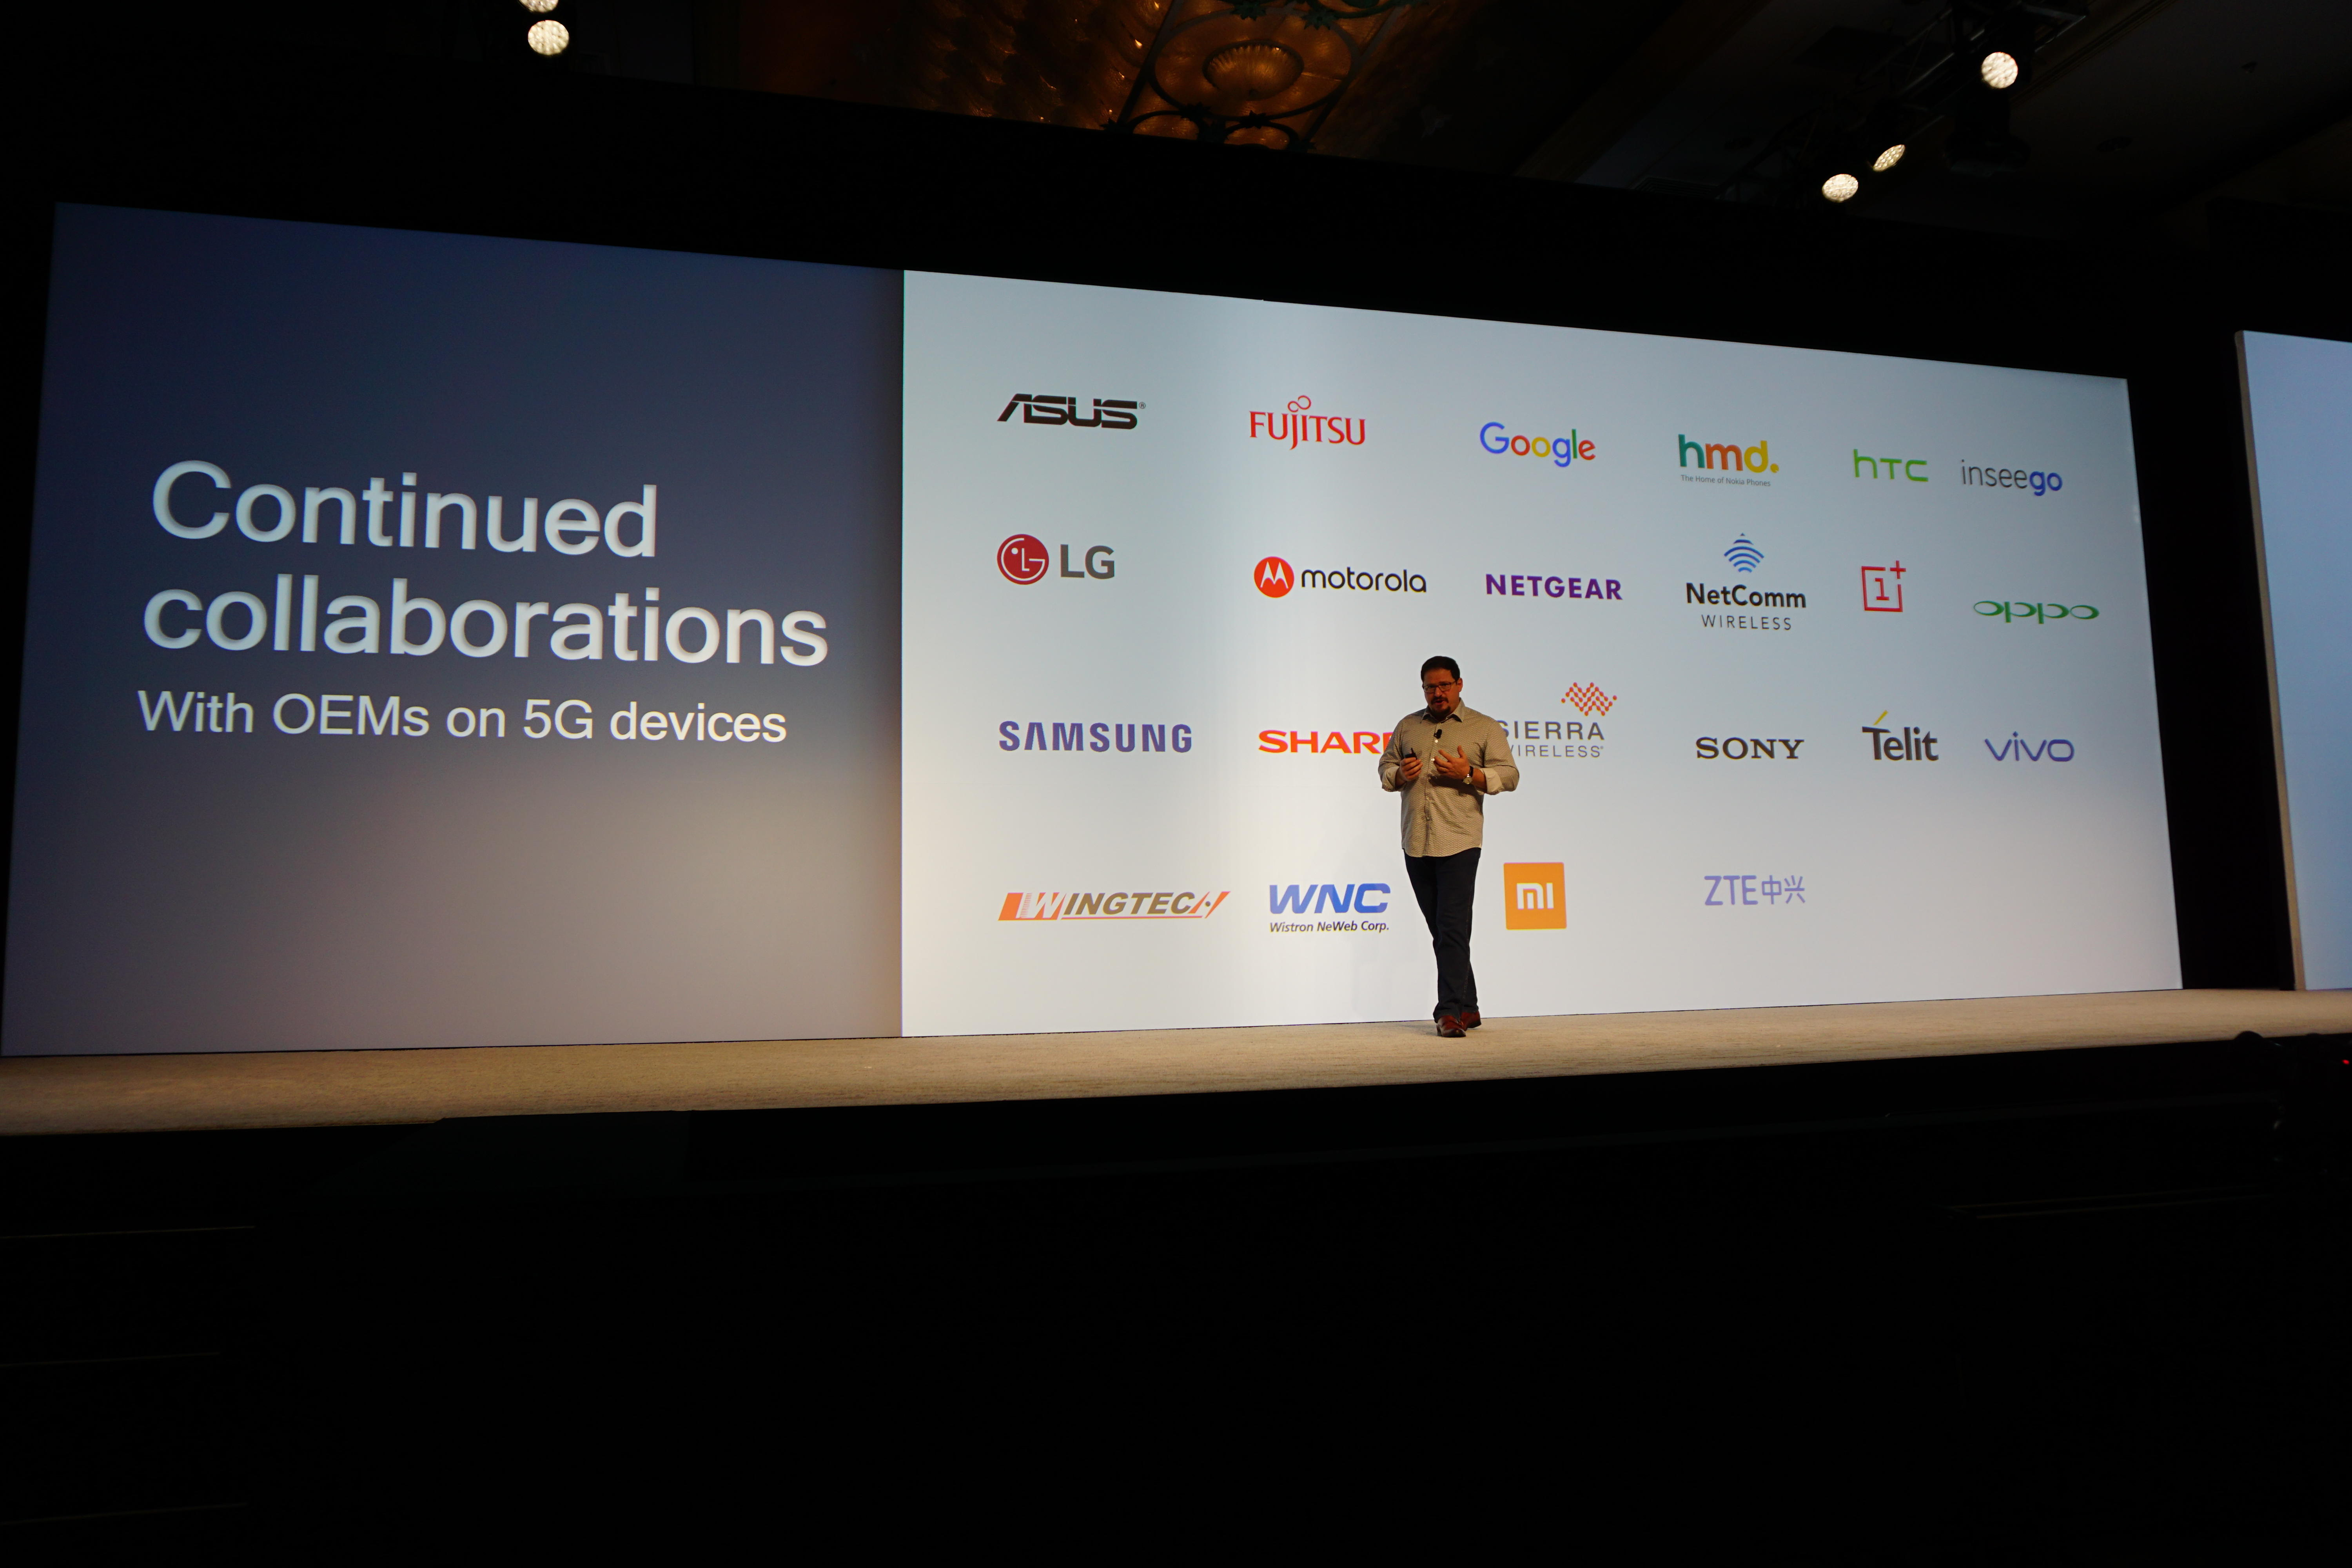 qualcomm-partners-on-5g-devices